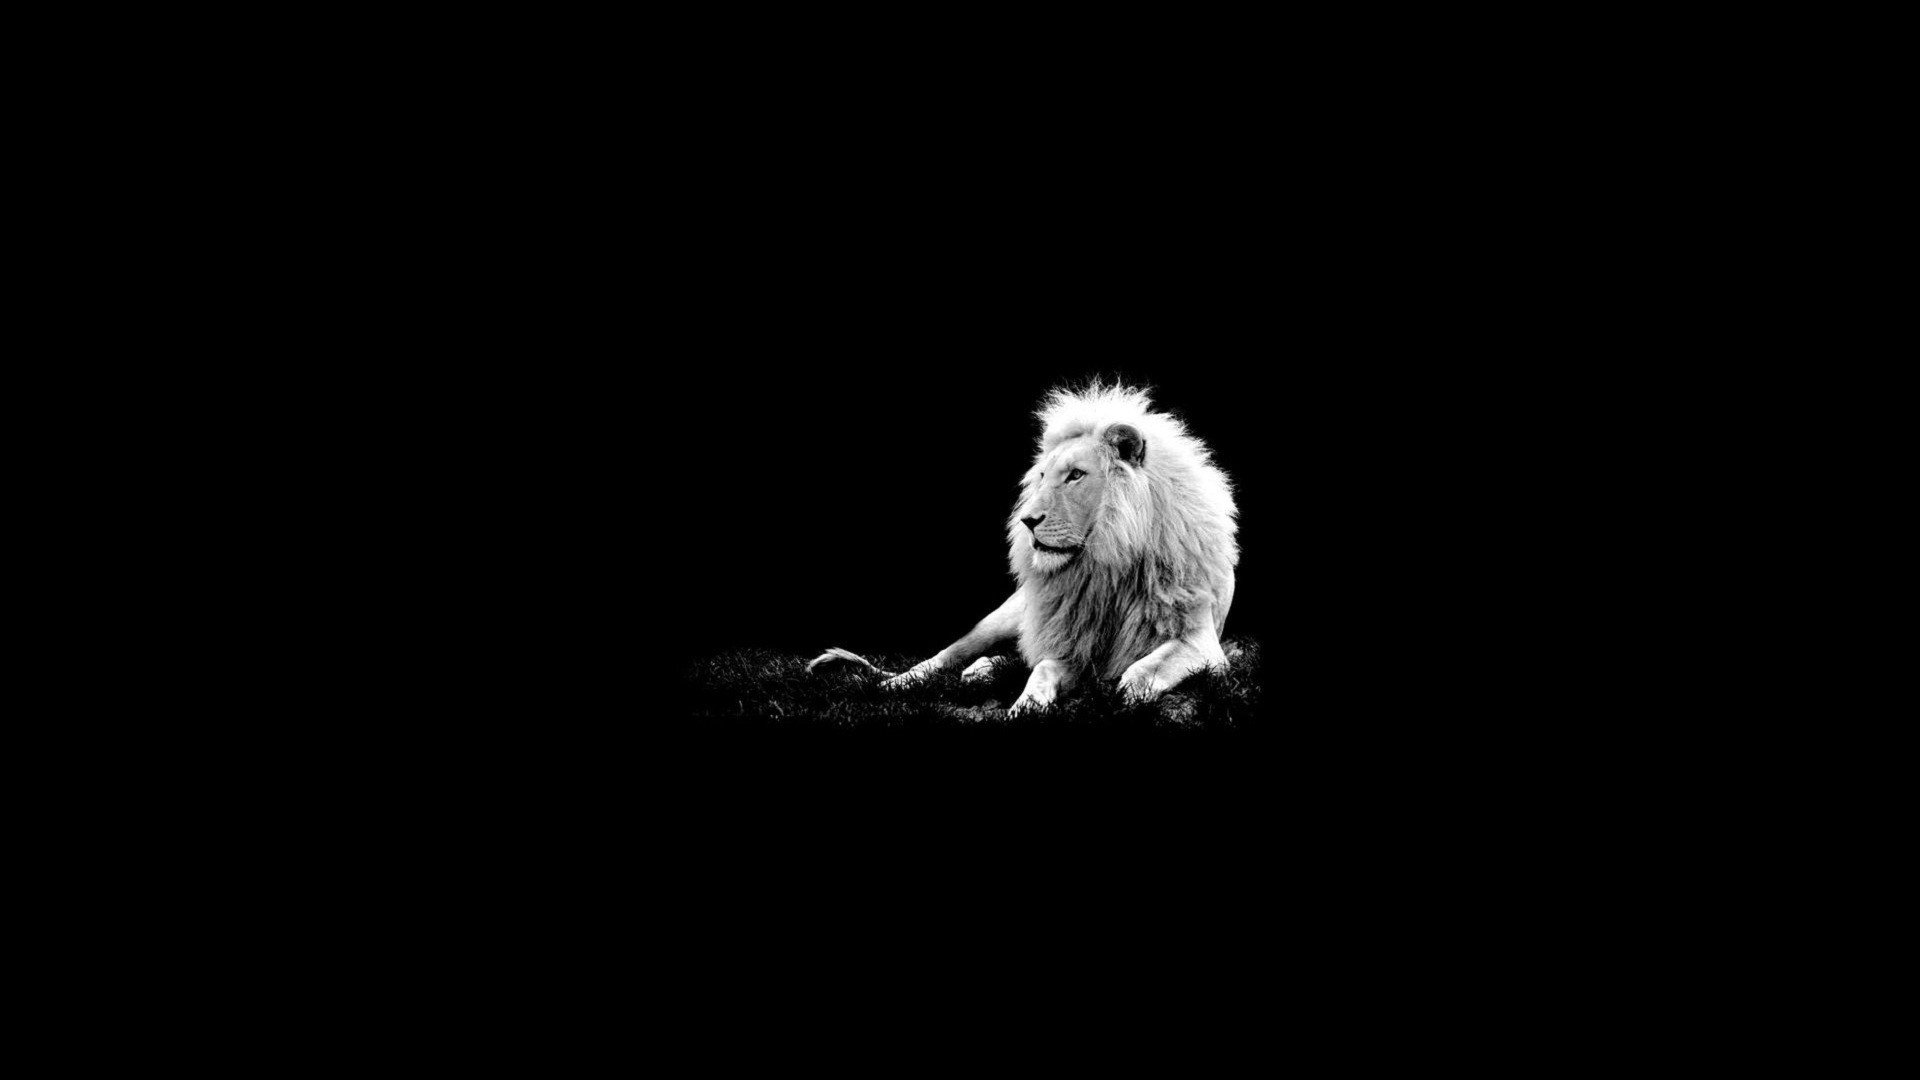 Black Art Dark Lion Wallpaper Desktop 174 Free Download Gamefree